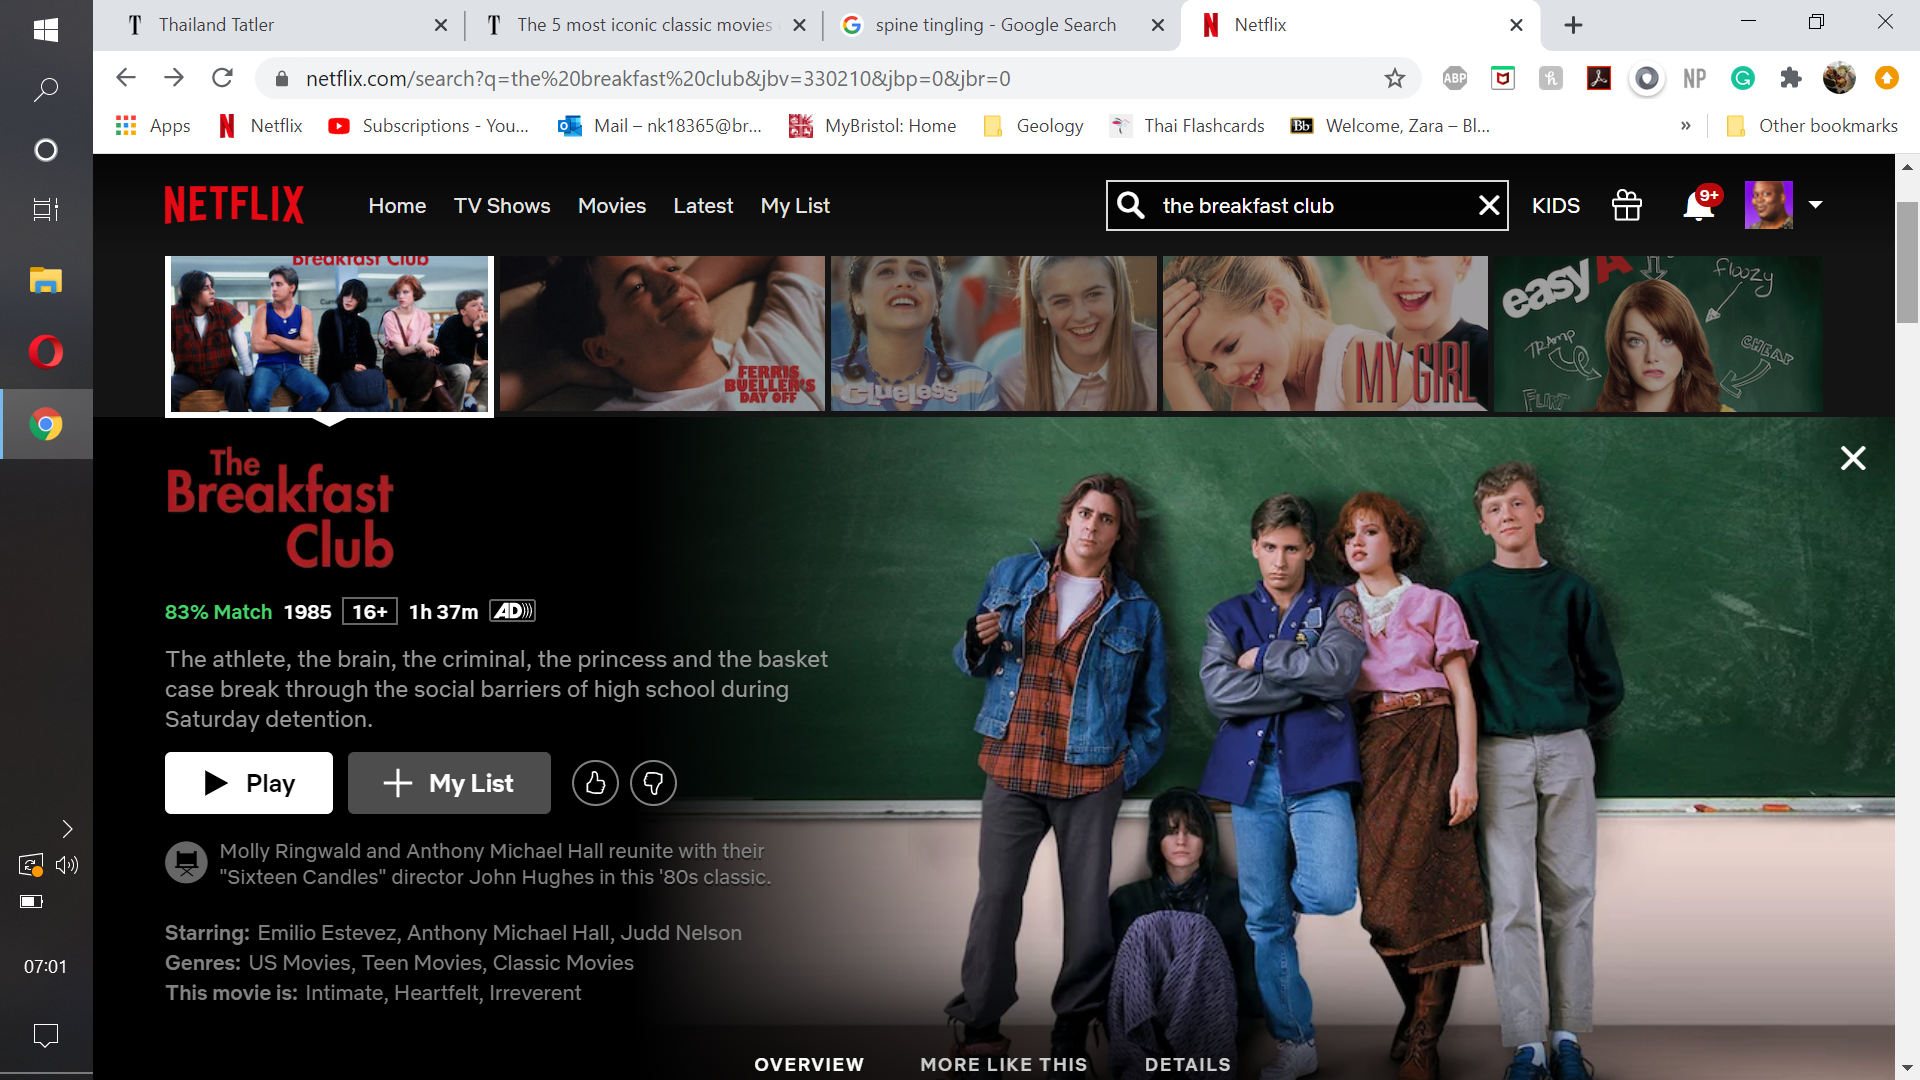 5 Iconic Classic Films To Watch On Netflix Now